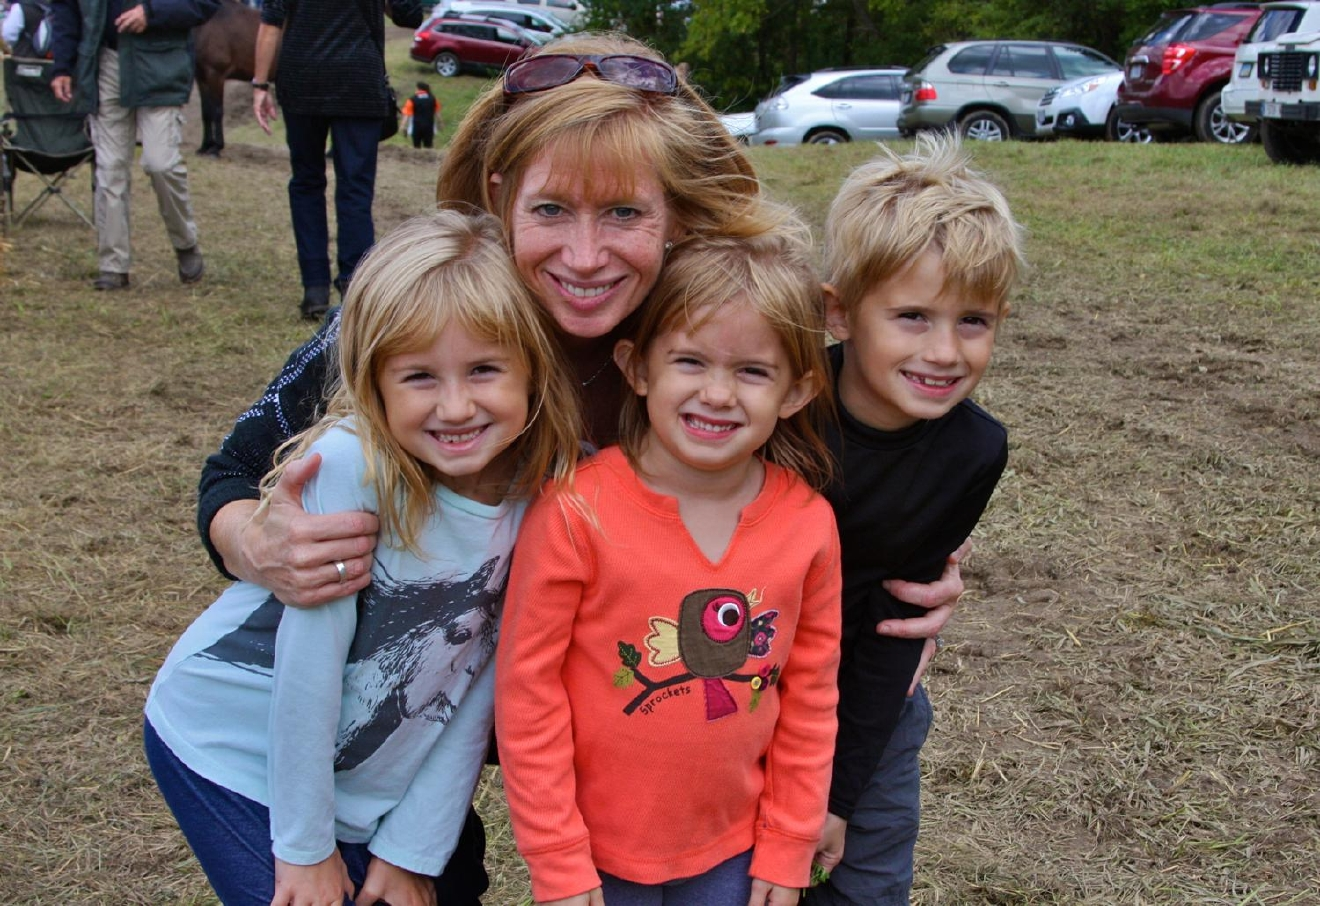 Tracy Brachle with her kids Maggie, Mary Kate, and Luke/ Image: Molly Paz